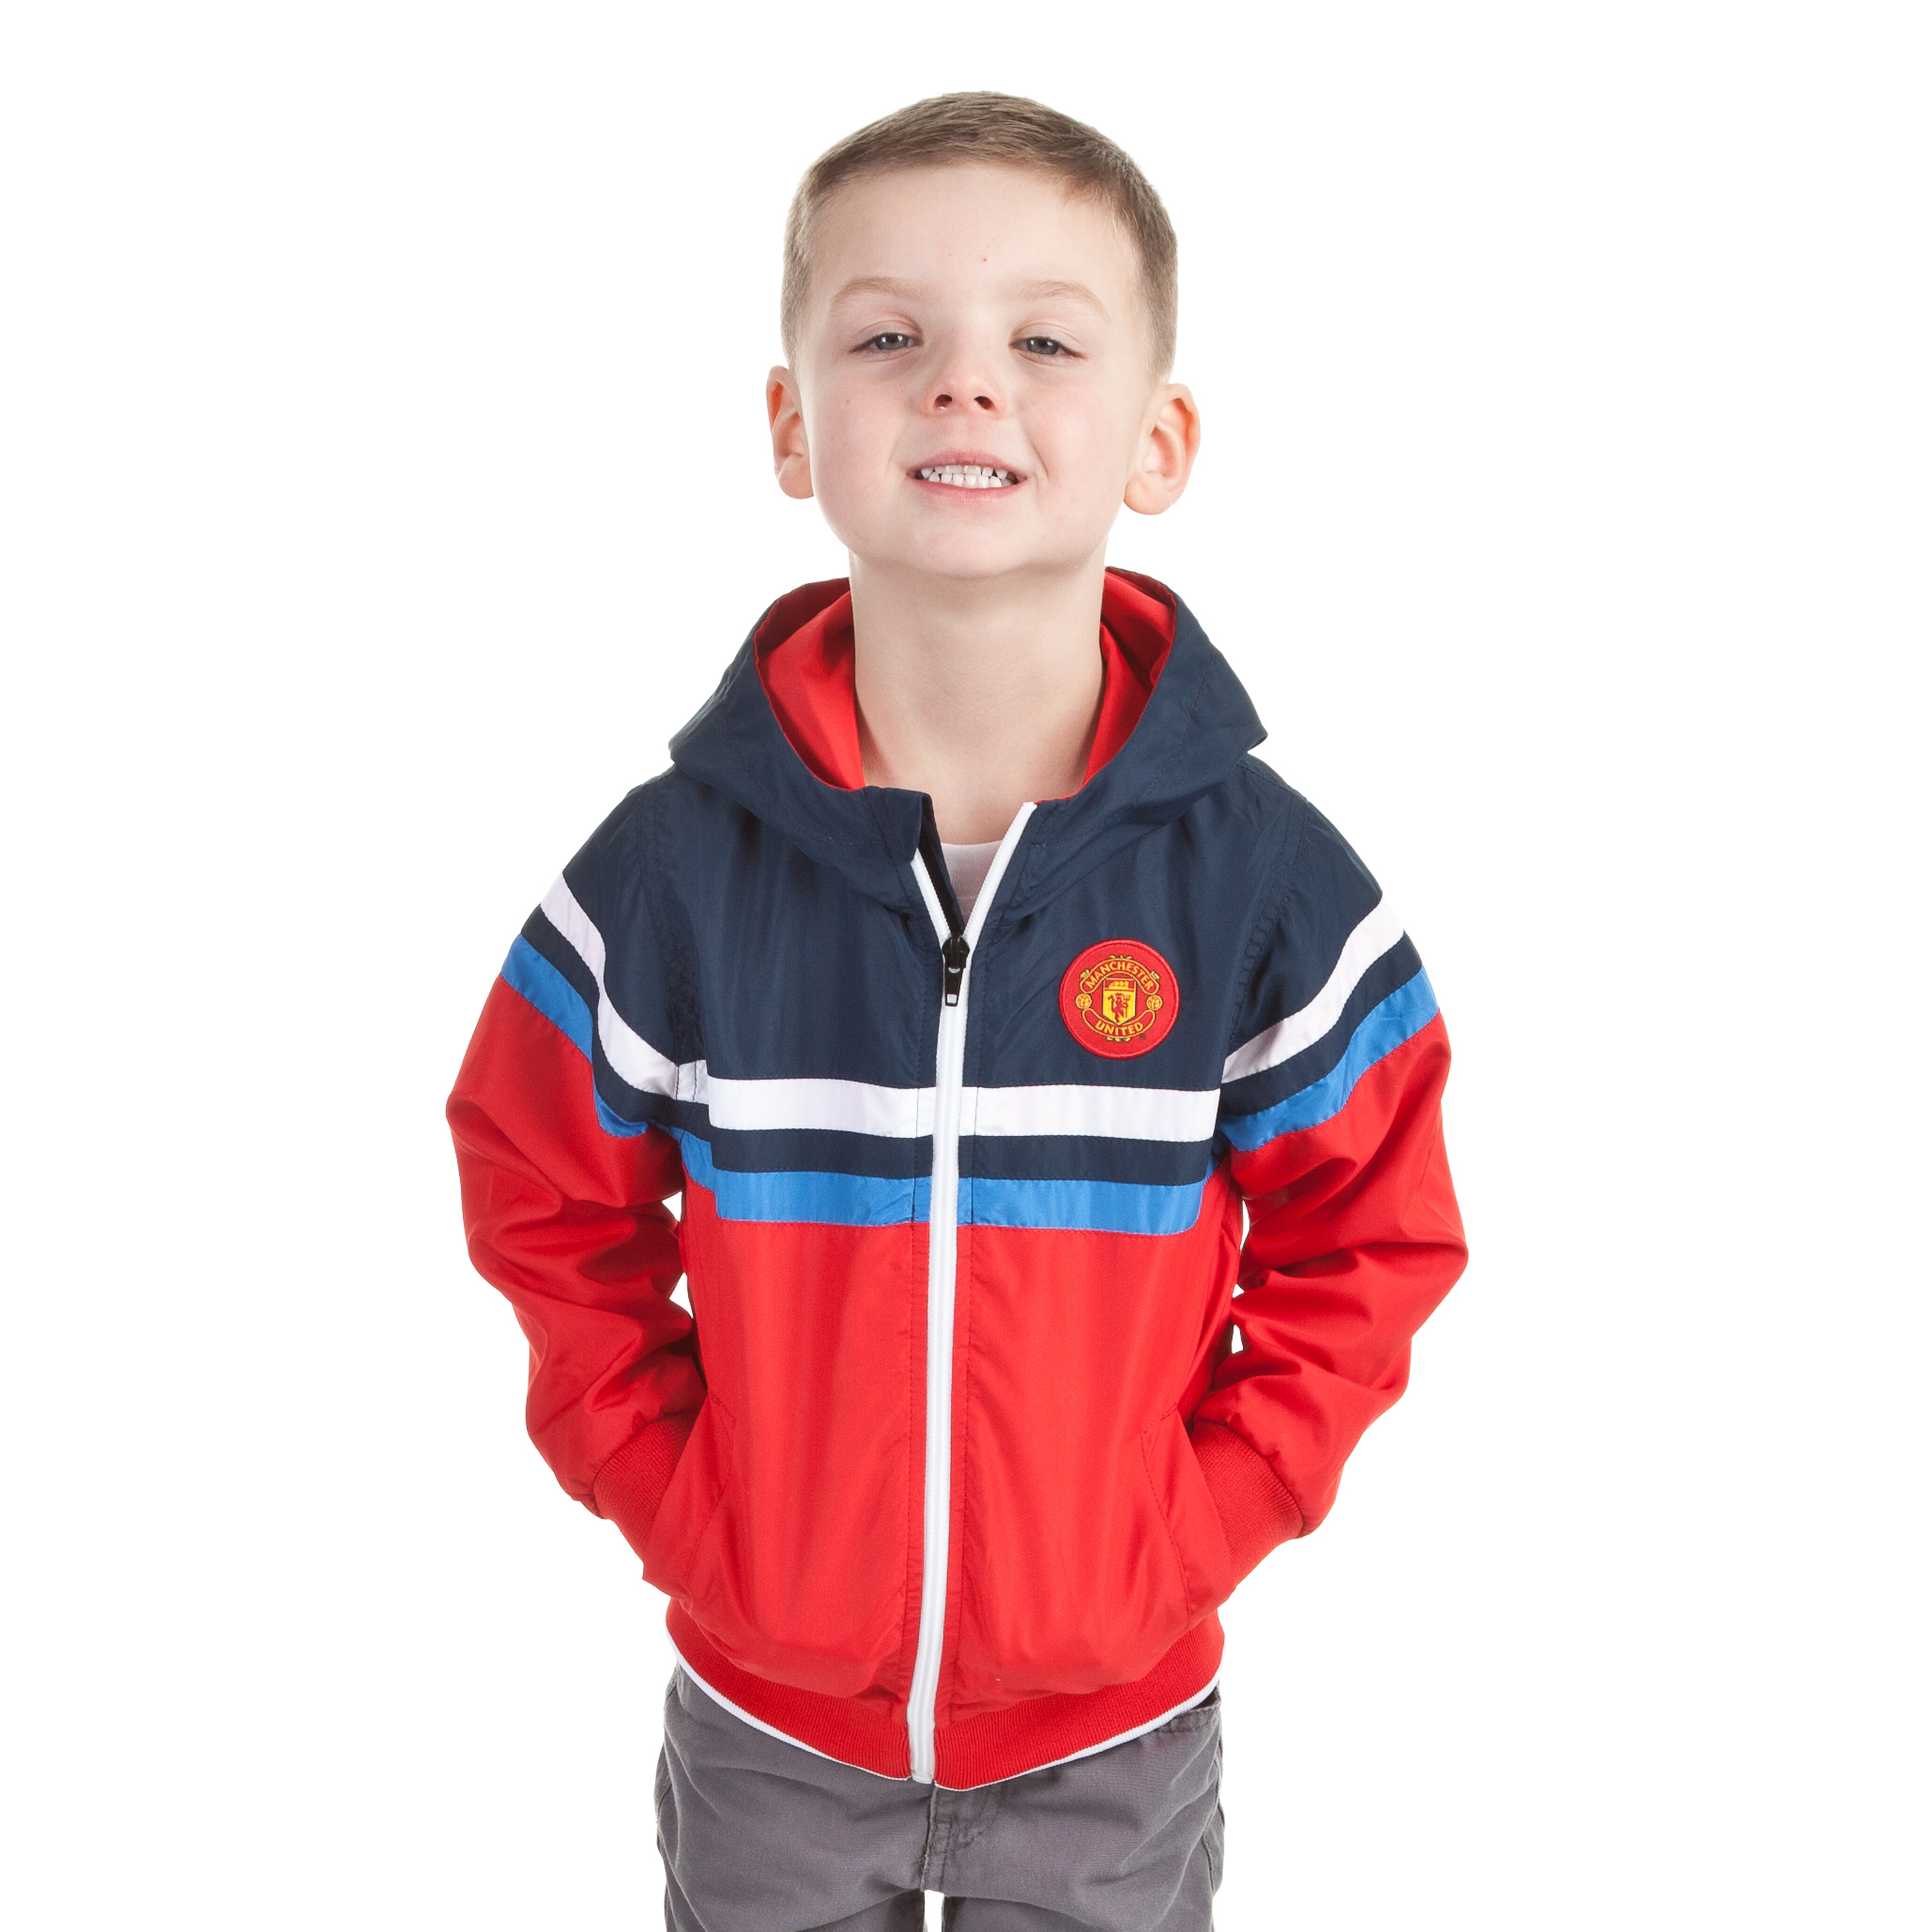 Manchester United The Reds Shower Jacket - OT Red - Infant Boys